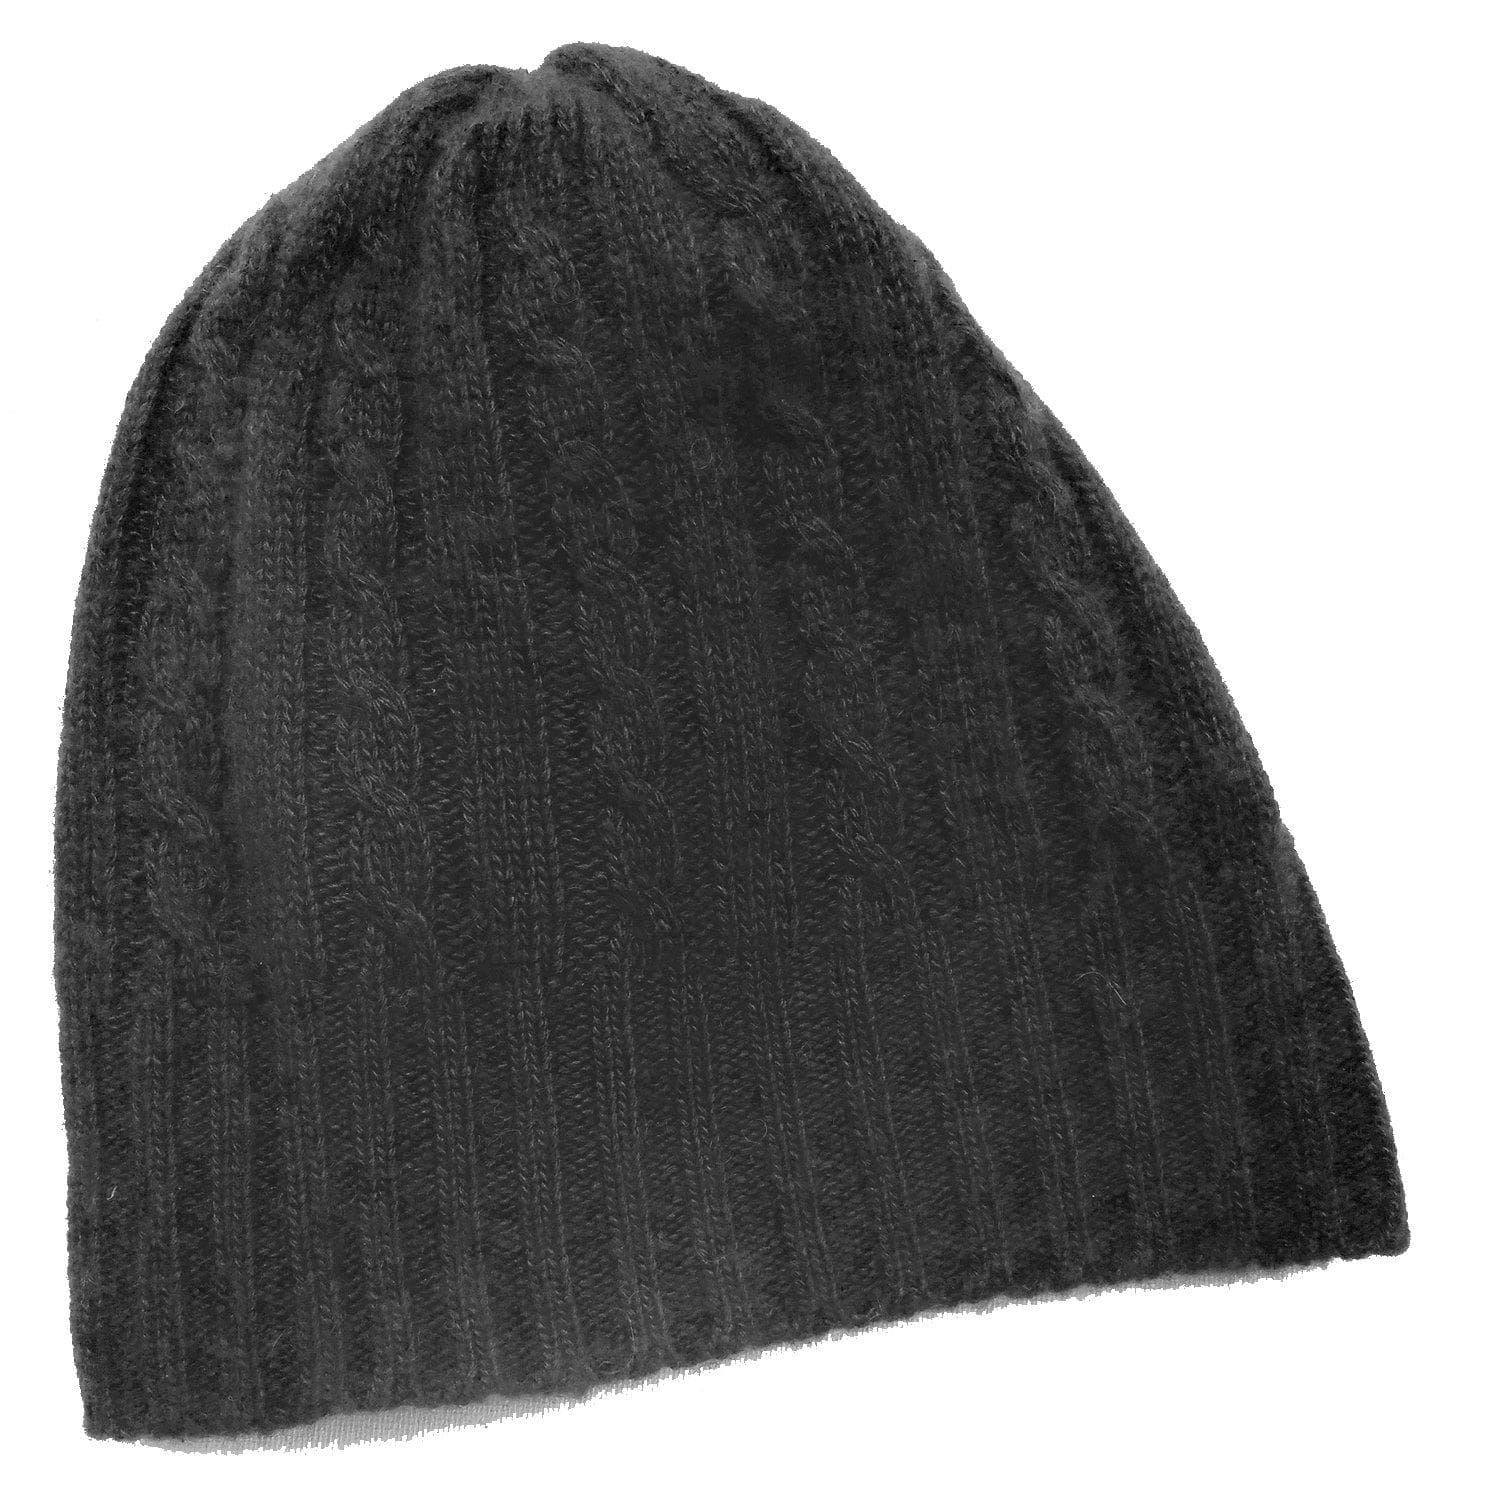 8b65a6550 Cabled Bison/Silk Knitted Hat